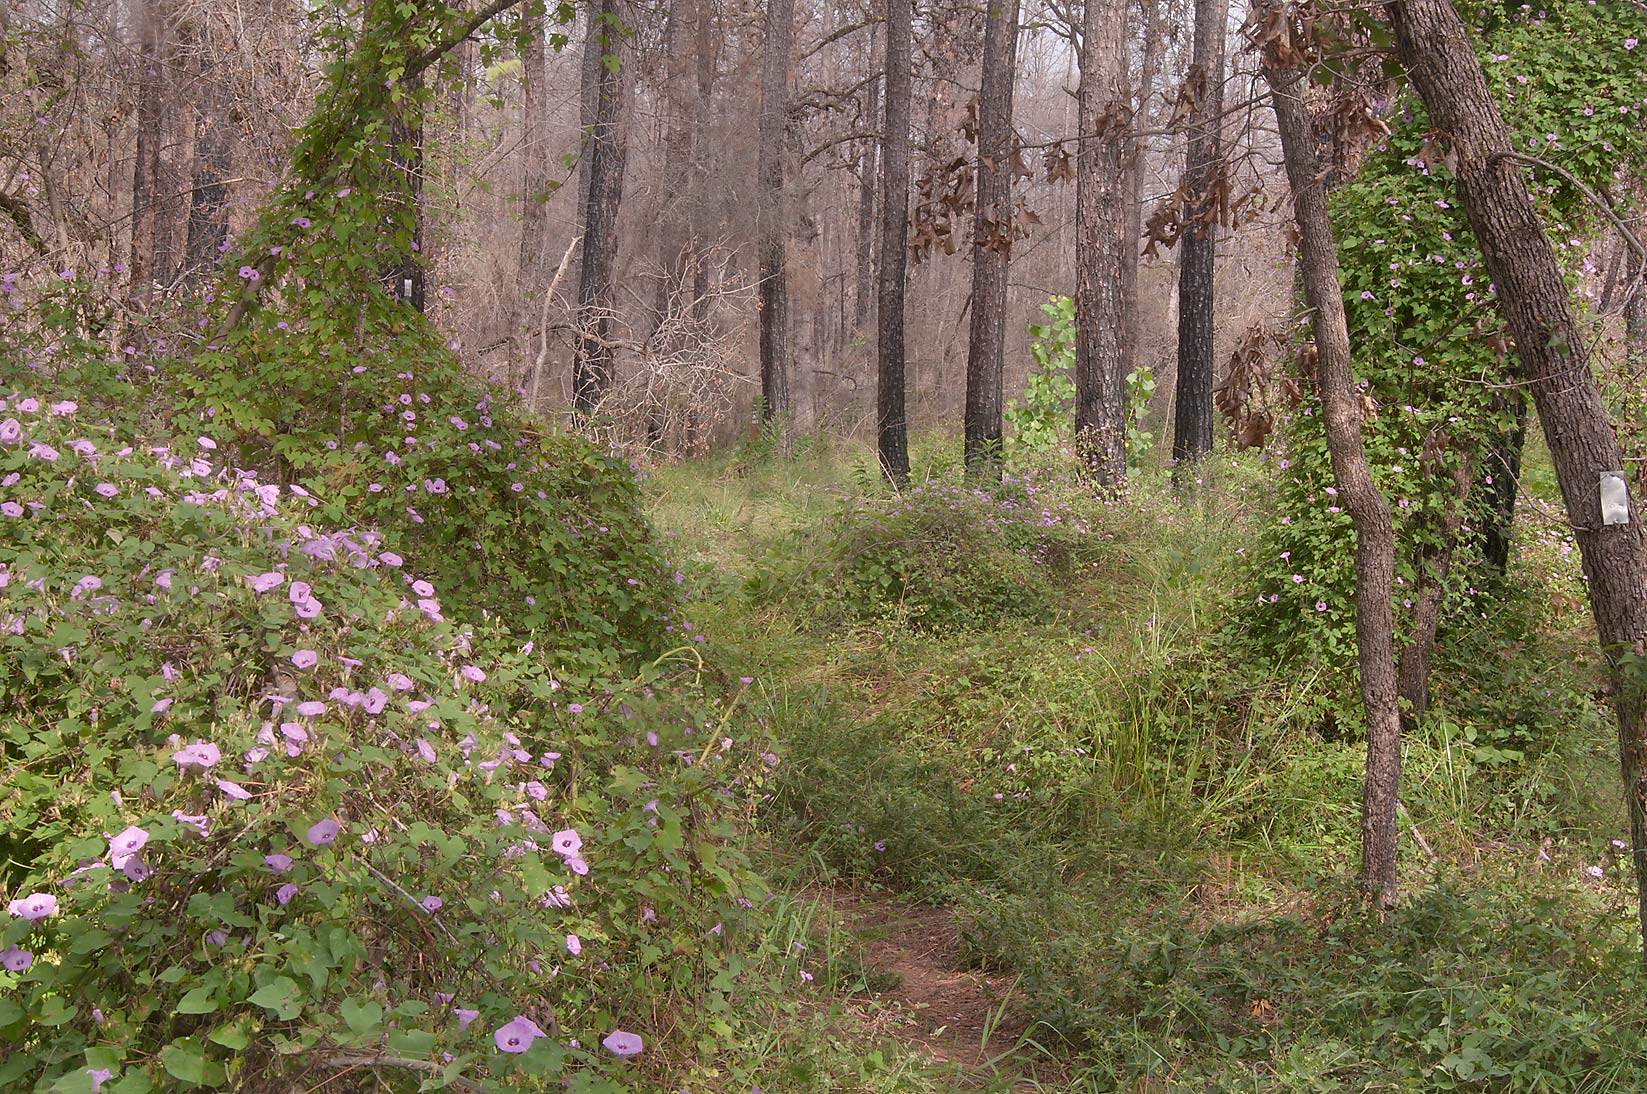 Jungles of morning glory at Lost Pines Trail in Bastrop State Park. Bastrop, Texas